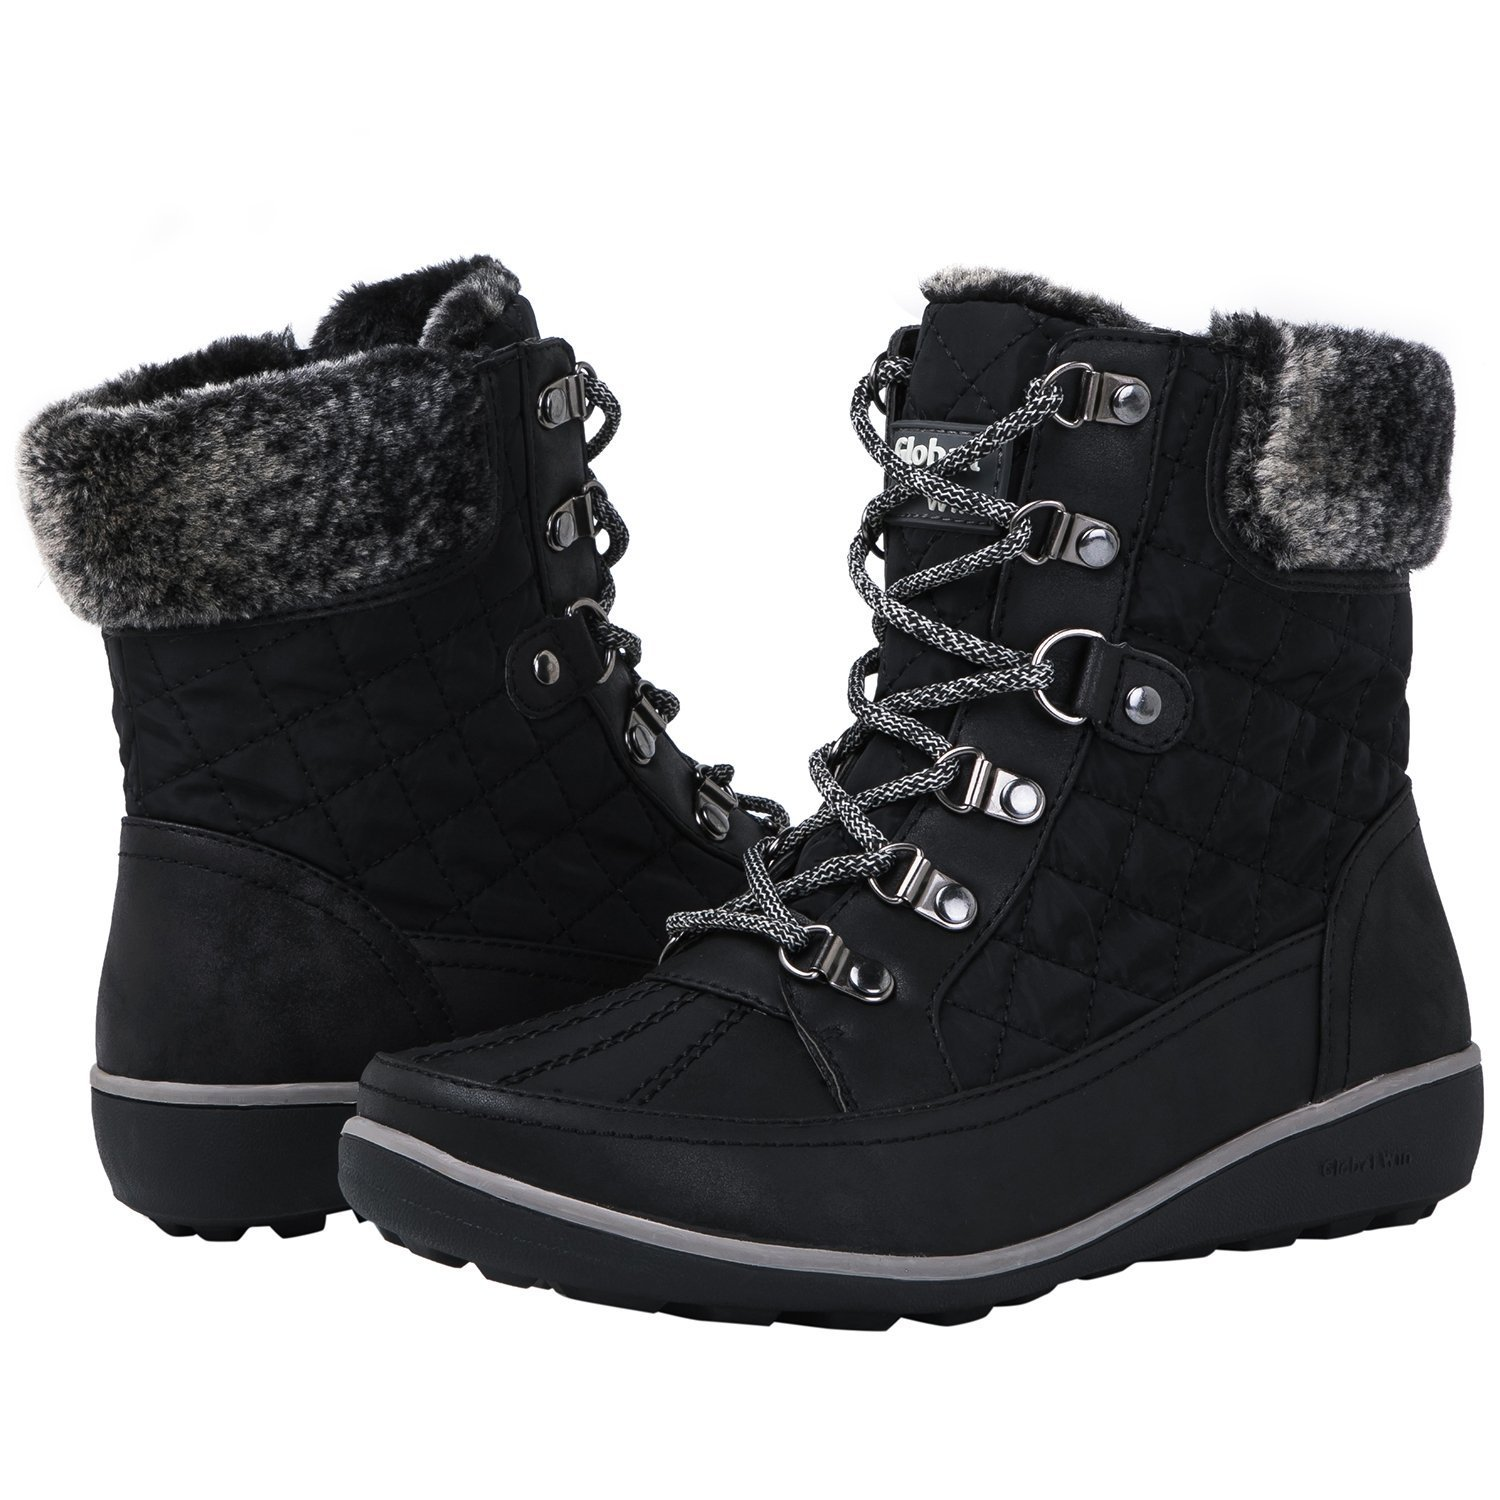 Globalwin Women's 1818 Black Snow Boots 8.5M